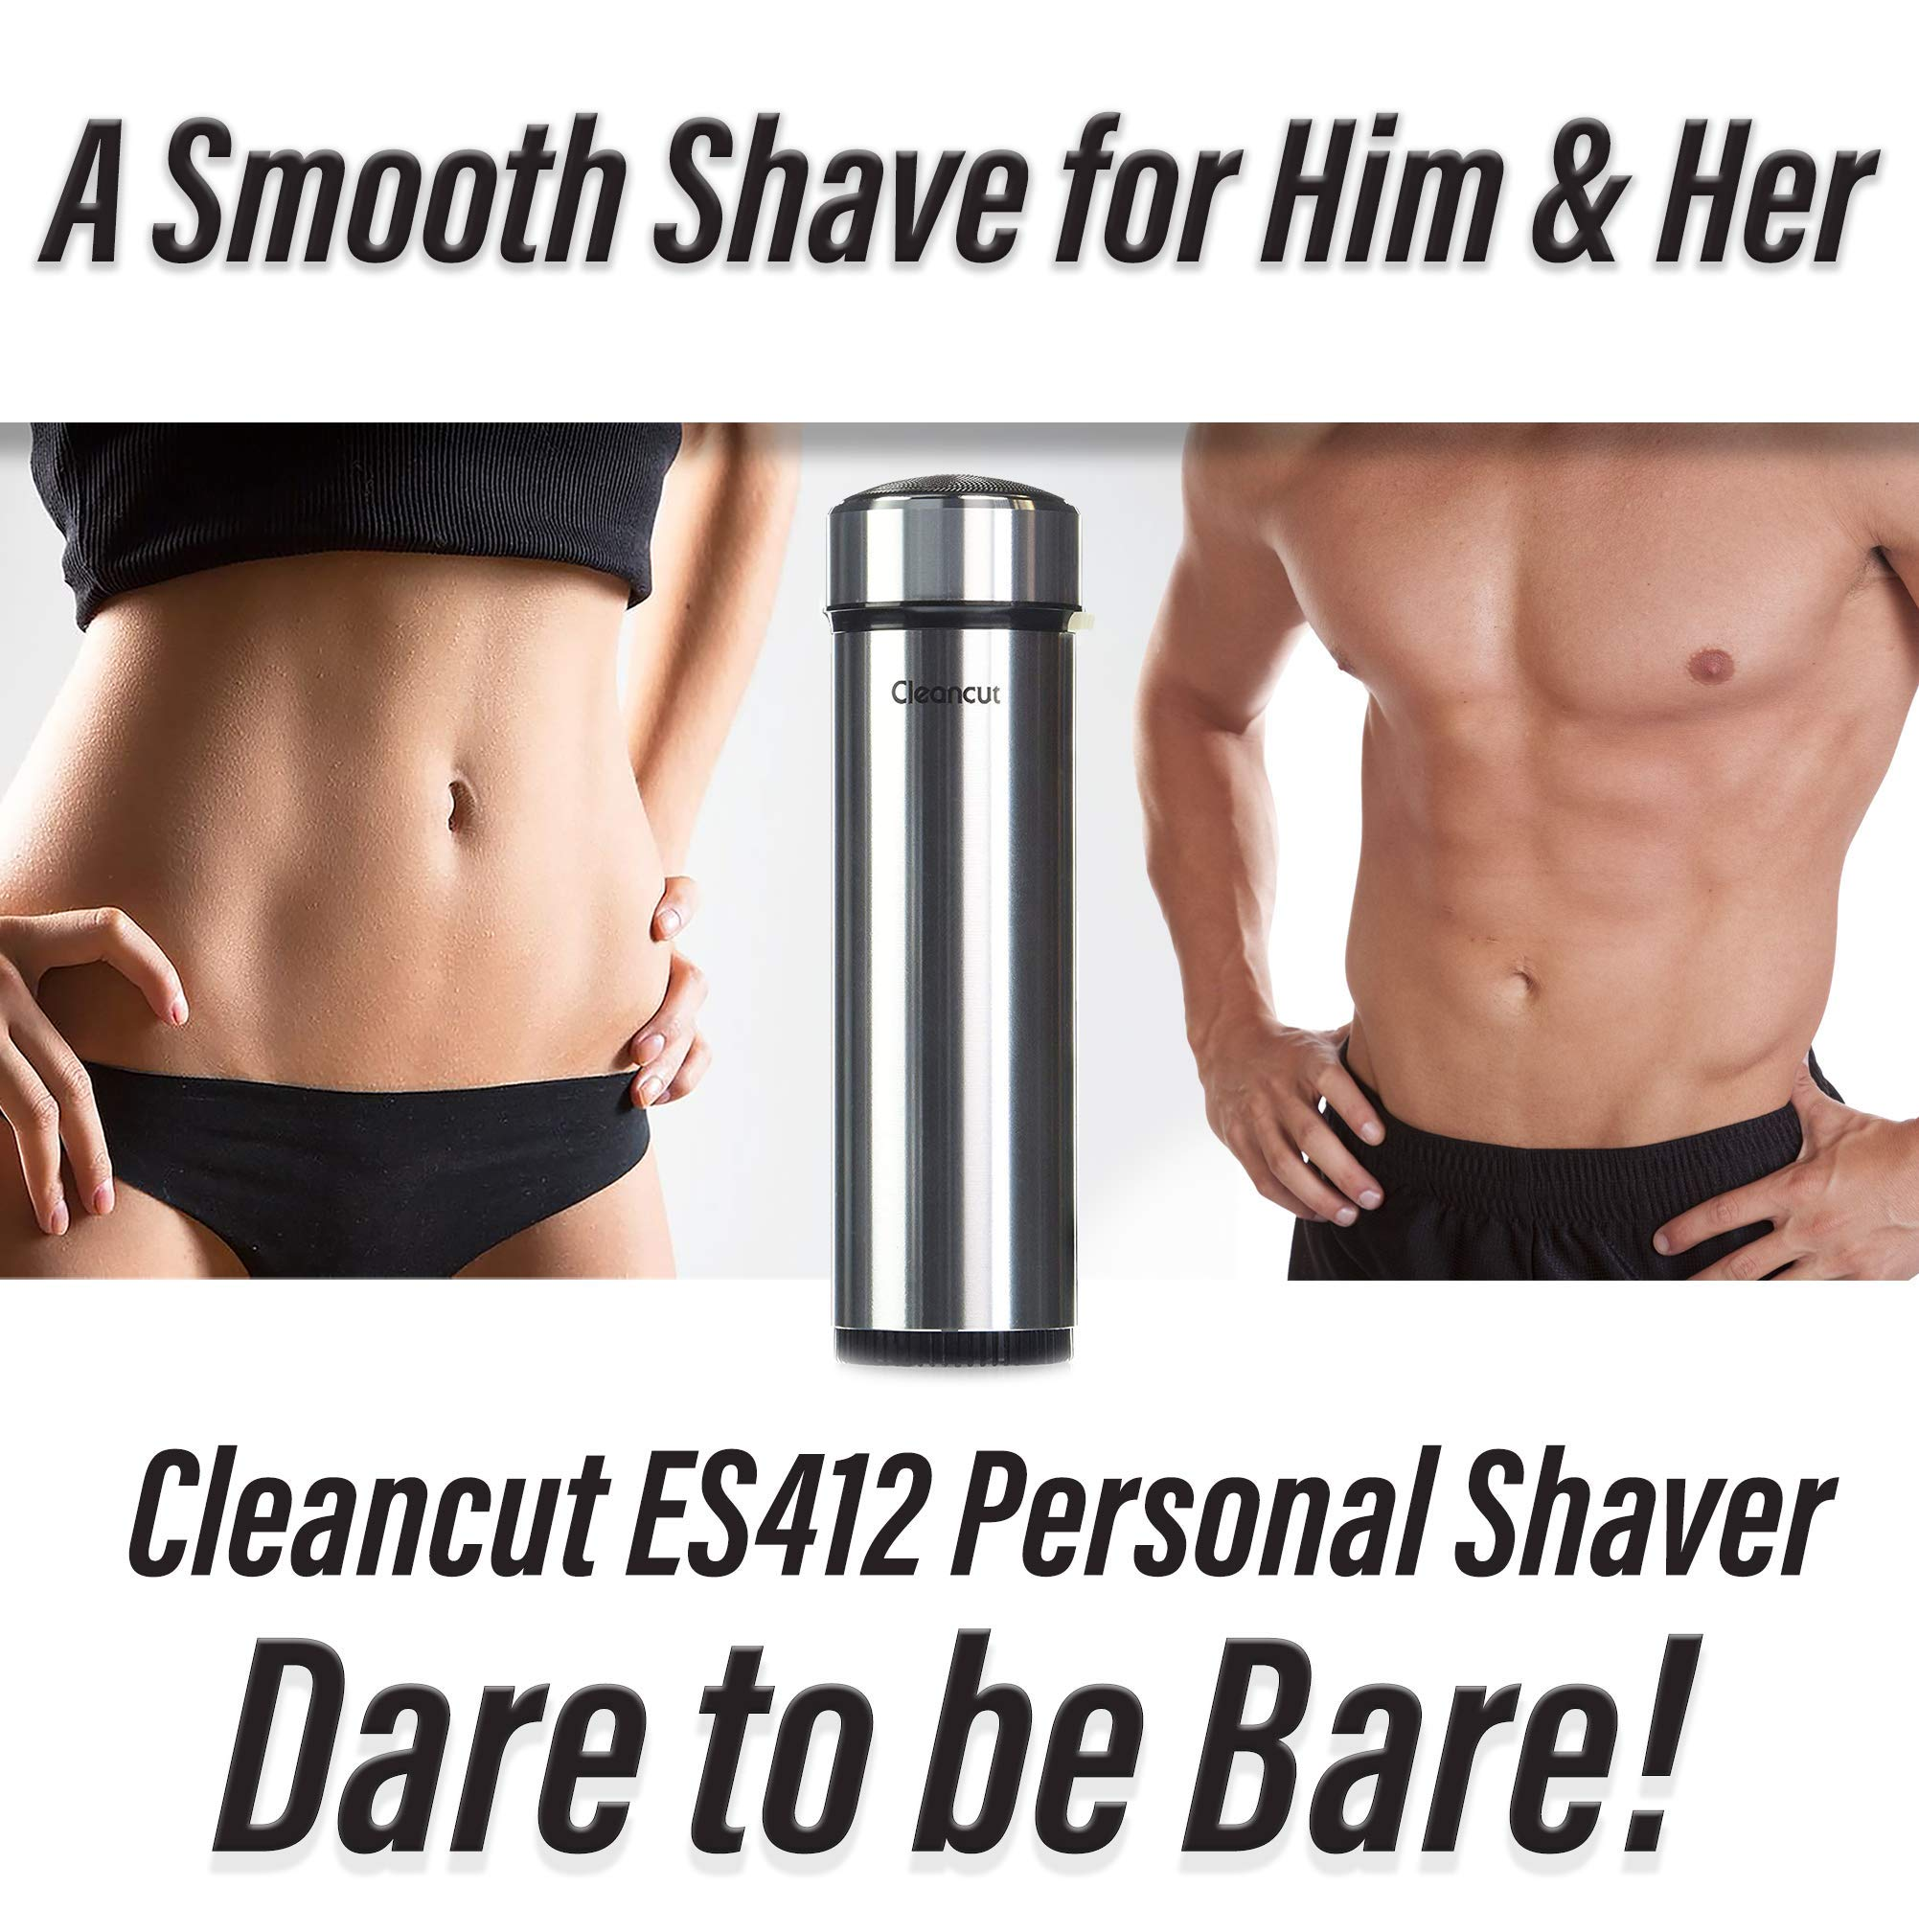 Cleancut - ES412 - Intimate and Sensitive Area Shaver - Designed for both Men and Women by CLEANCUT